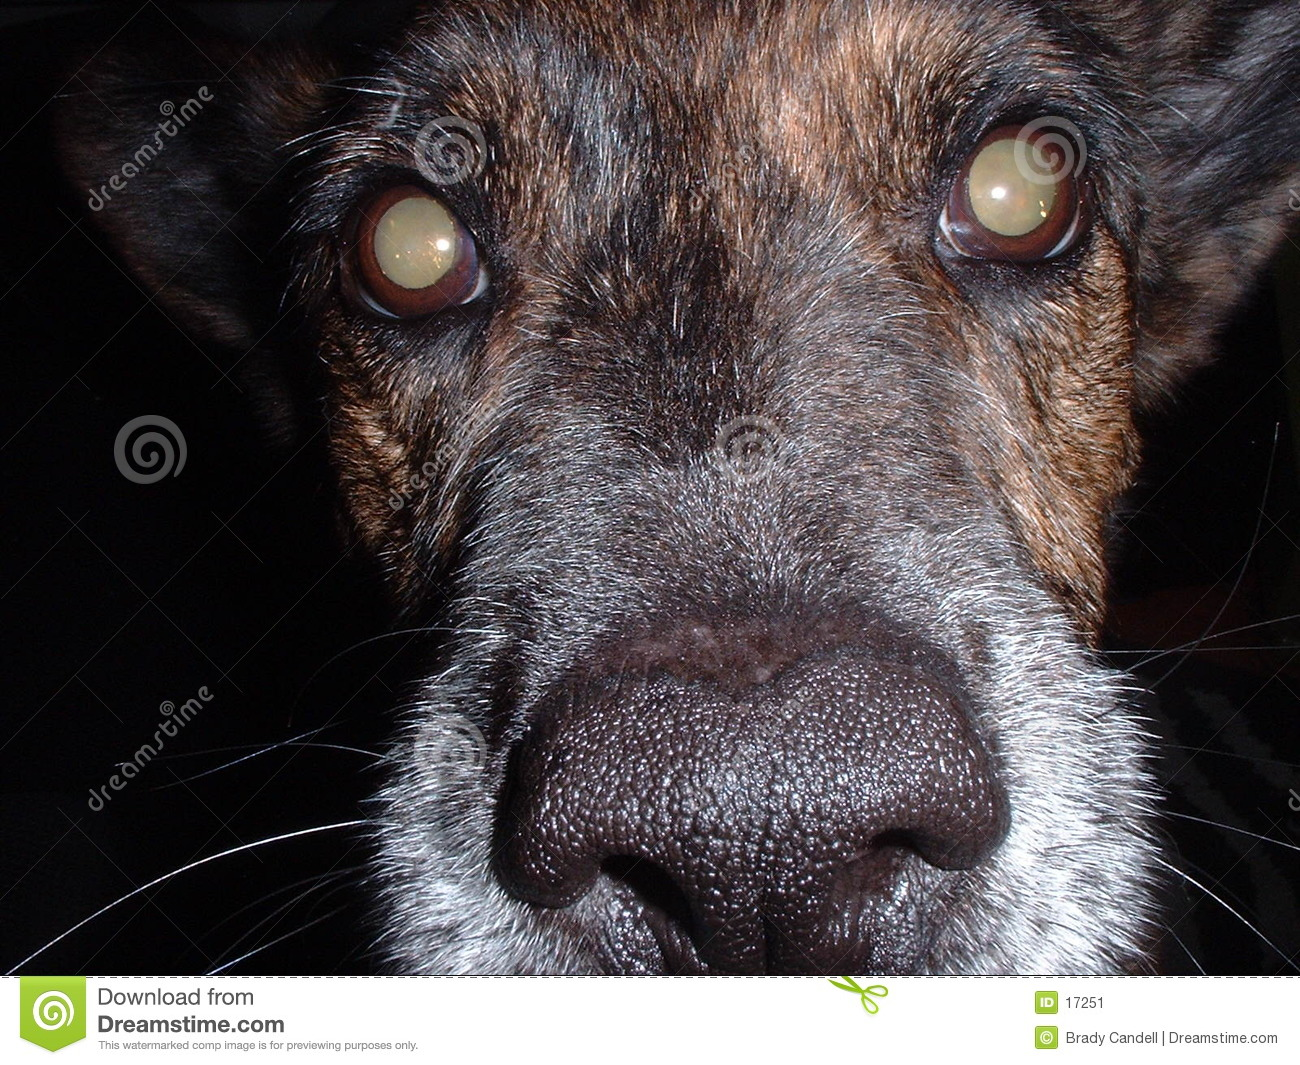 Dog face close-up